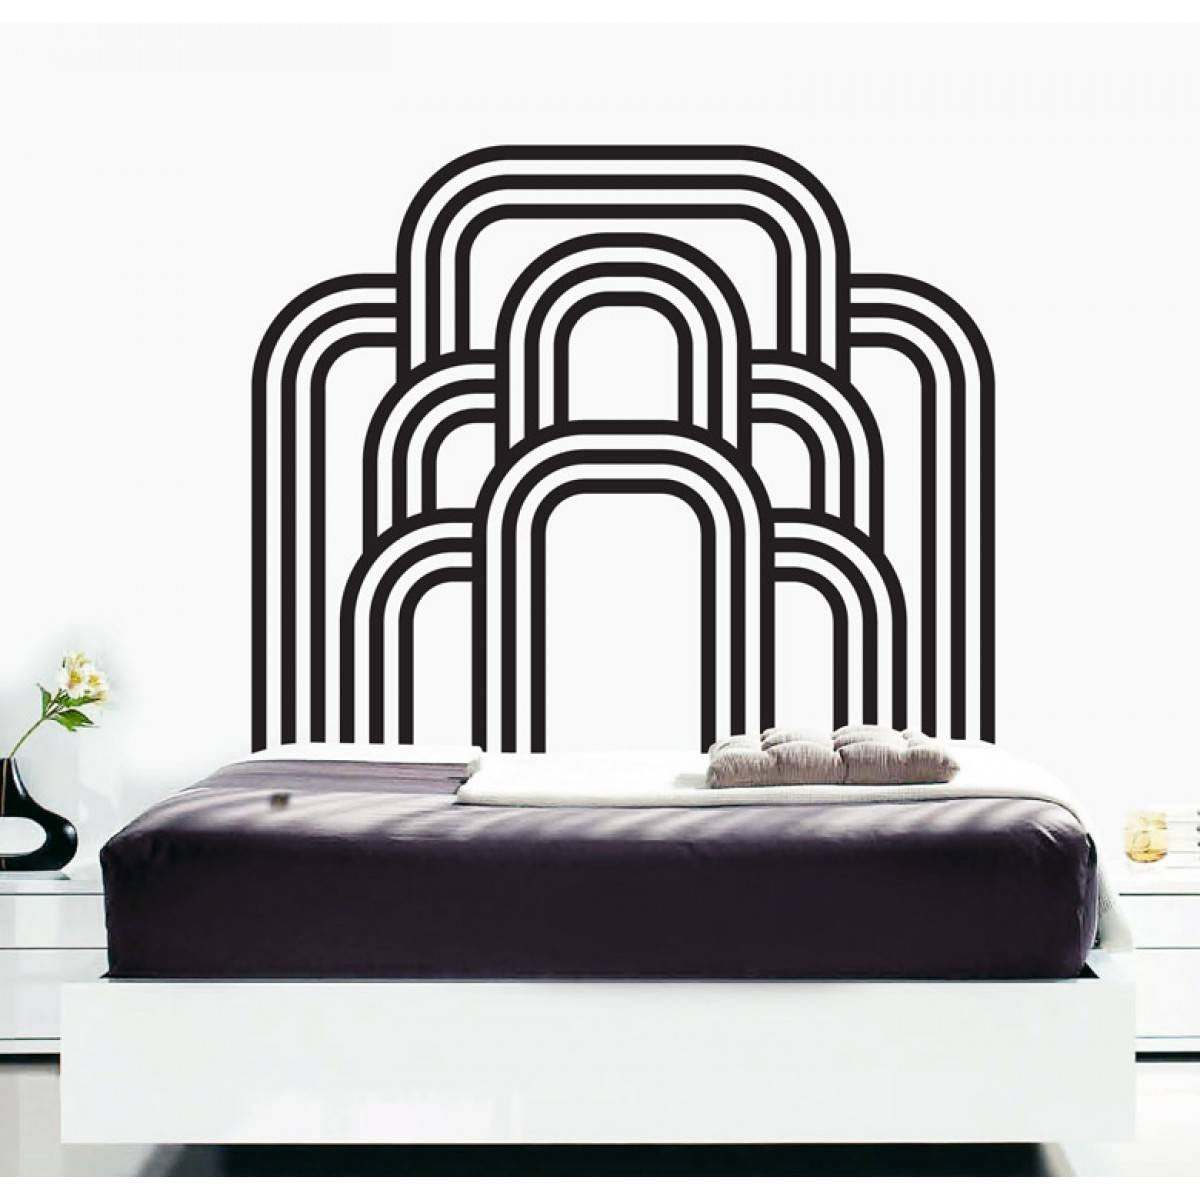 Wall Decals – Thewonderwalls® | Bedroom Art Deco Wall Stickers Intended For Most Current Art Deco Wall Decals (View 17 of 20)